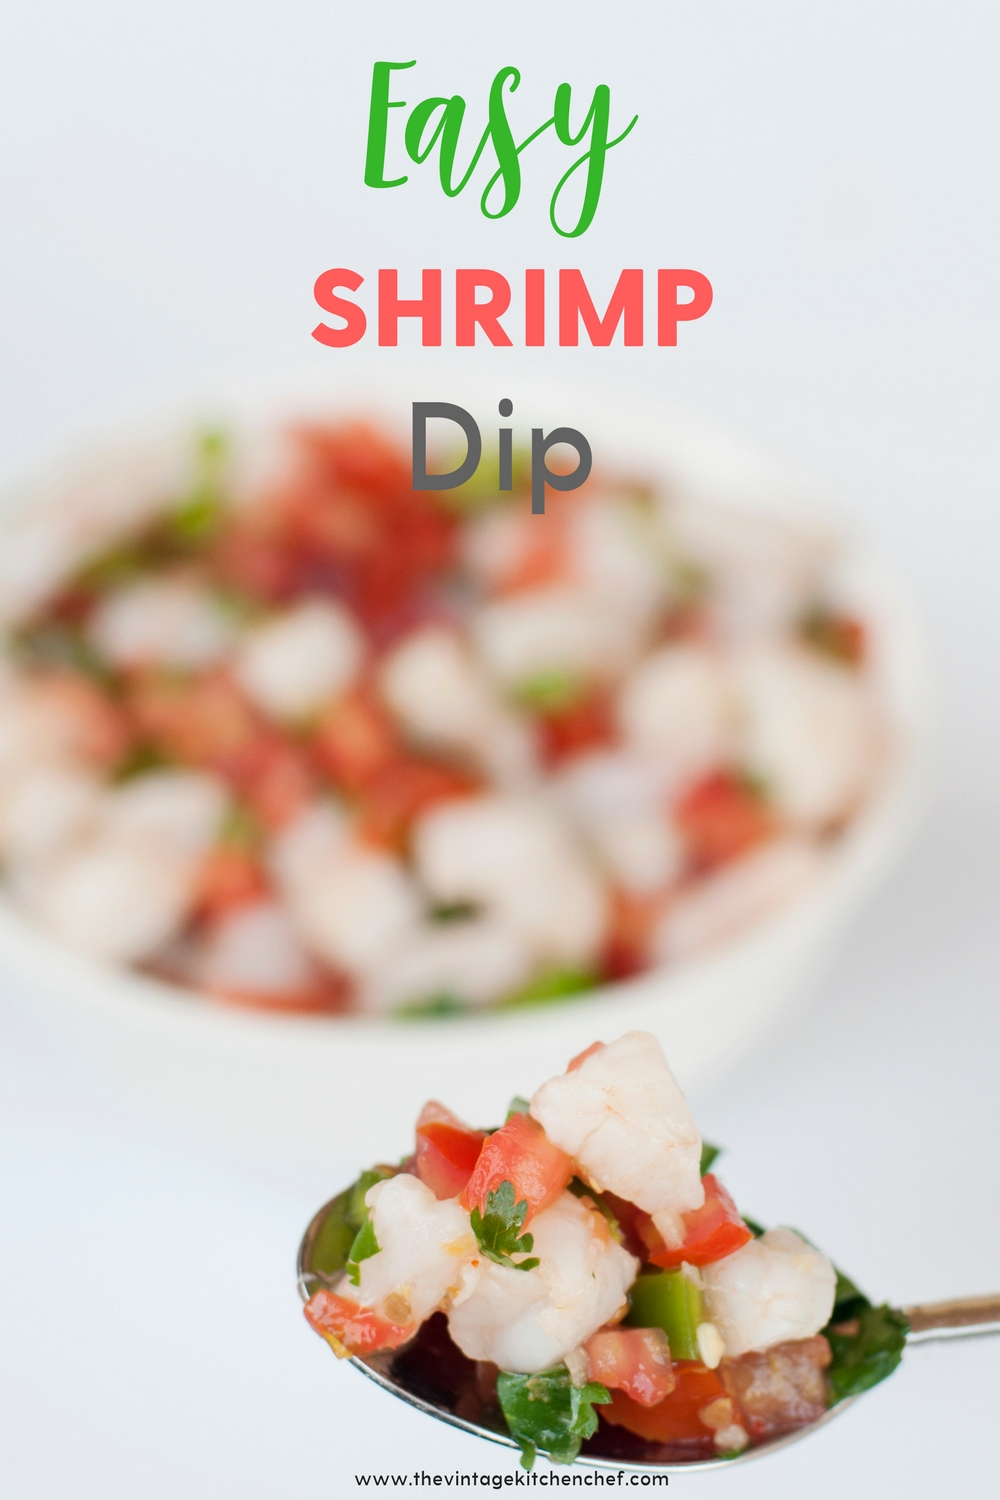 Easy Shrimp Dip is bursting with fresh flavors and textures. Whether it's served with tortilla chips, filling for tacos or on its own it's always a hit!